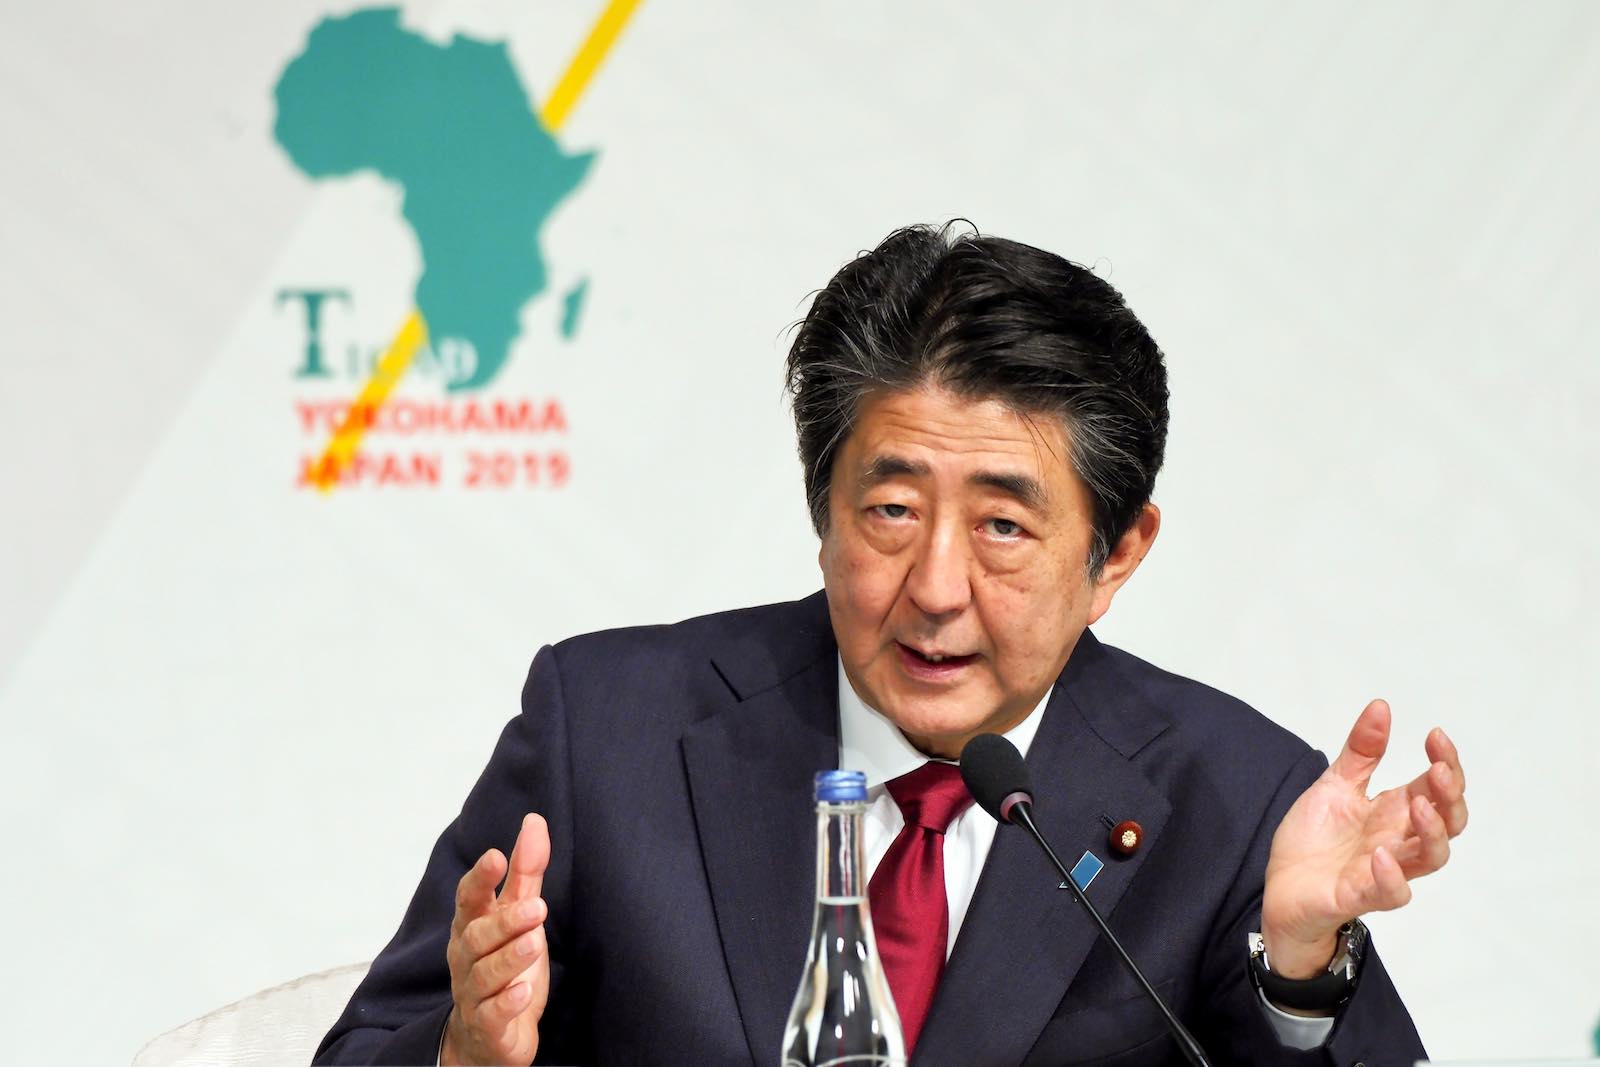 Japan's Prime Minister Shinzo Abe answers questions during a press conference last month at the seventh Tokyo International Conference on African Development (Photo: Toshifumi Kitamura/AFP/Getty Images)